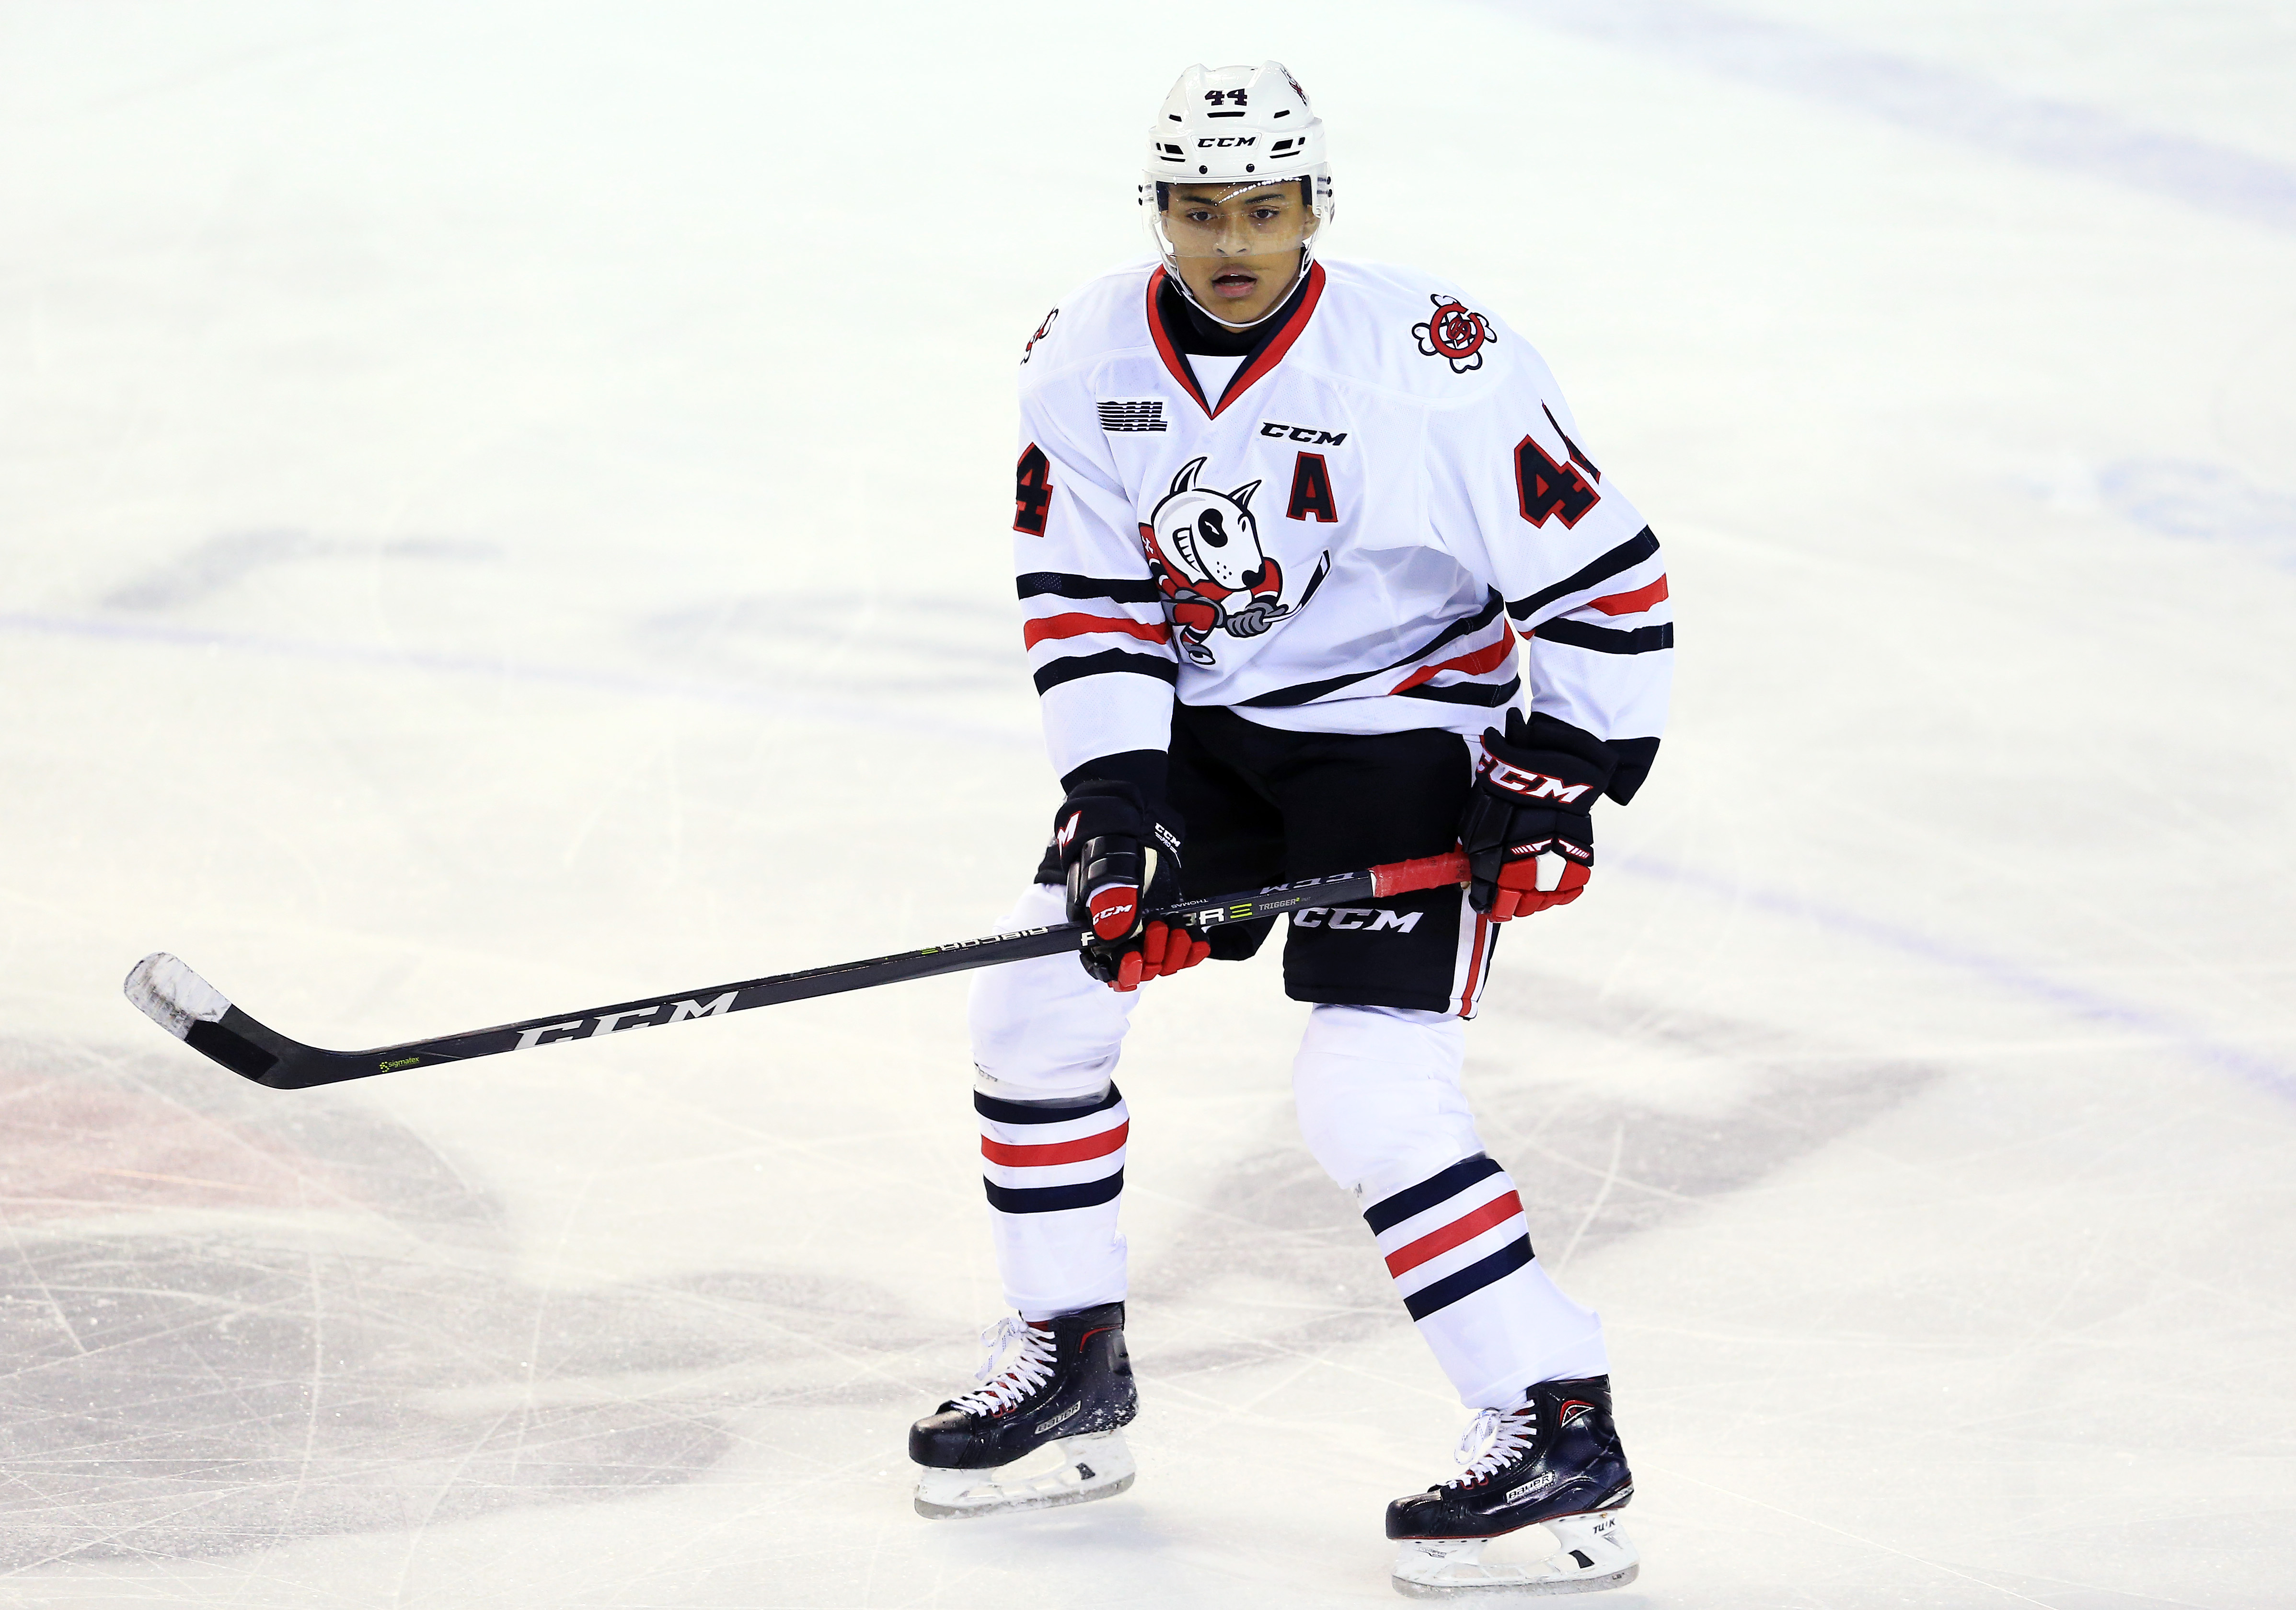 ST CATHARINES, ON - OCTOBER 26: Akil Thomas #44 of the Niagara IceDogs skates during an OHL game against the Oshawa Generals at the Meridian Centre on October 26, 2017 in St Catharines, Ontario, Canada.